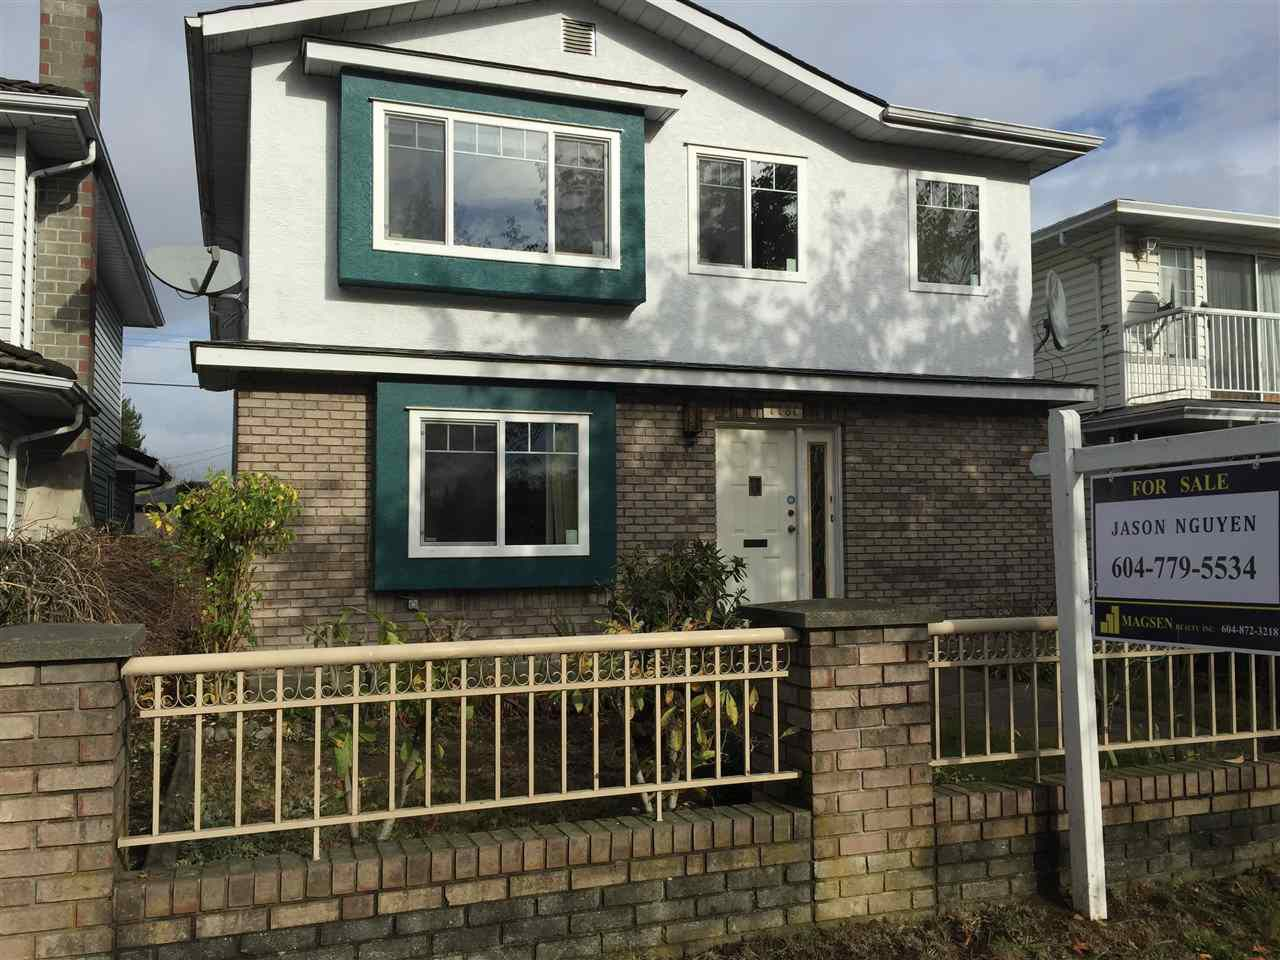 Main Photo: 1781 E 49TH AVENUE in Vancouver: Killarney VE House for sale (Vancouver East)  : MLS®# R2011605